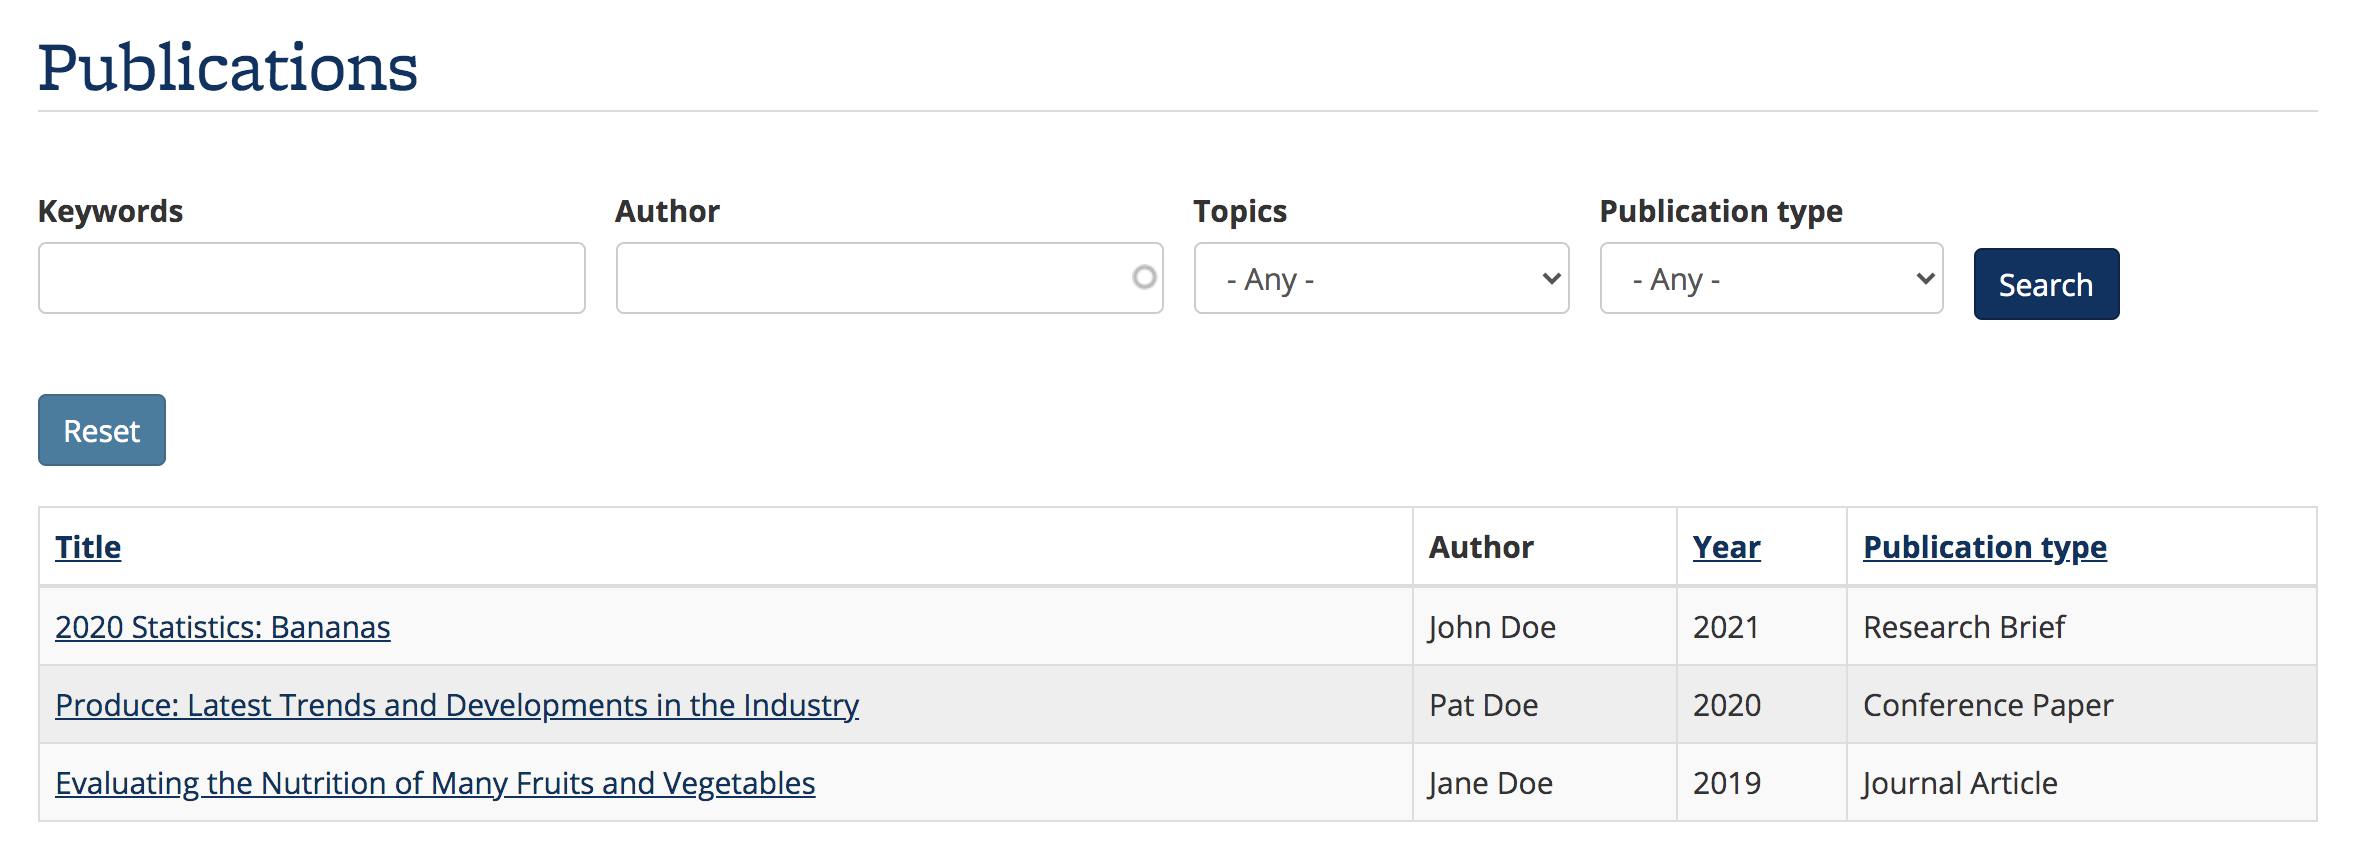 Screenshot of Publications table, which displays several filter and search buttons, and a table with links to the Publications content item, author, and other information